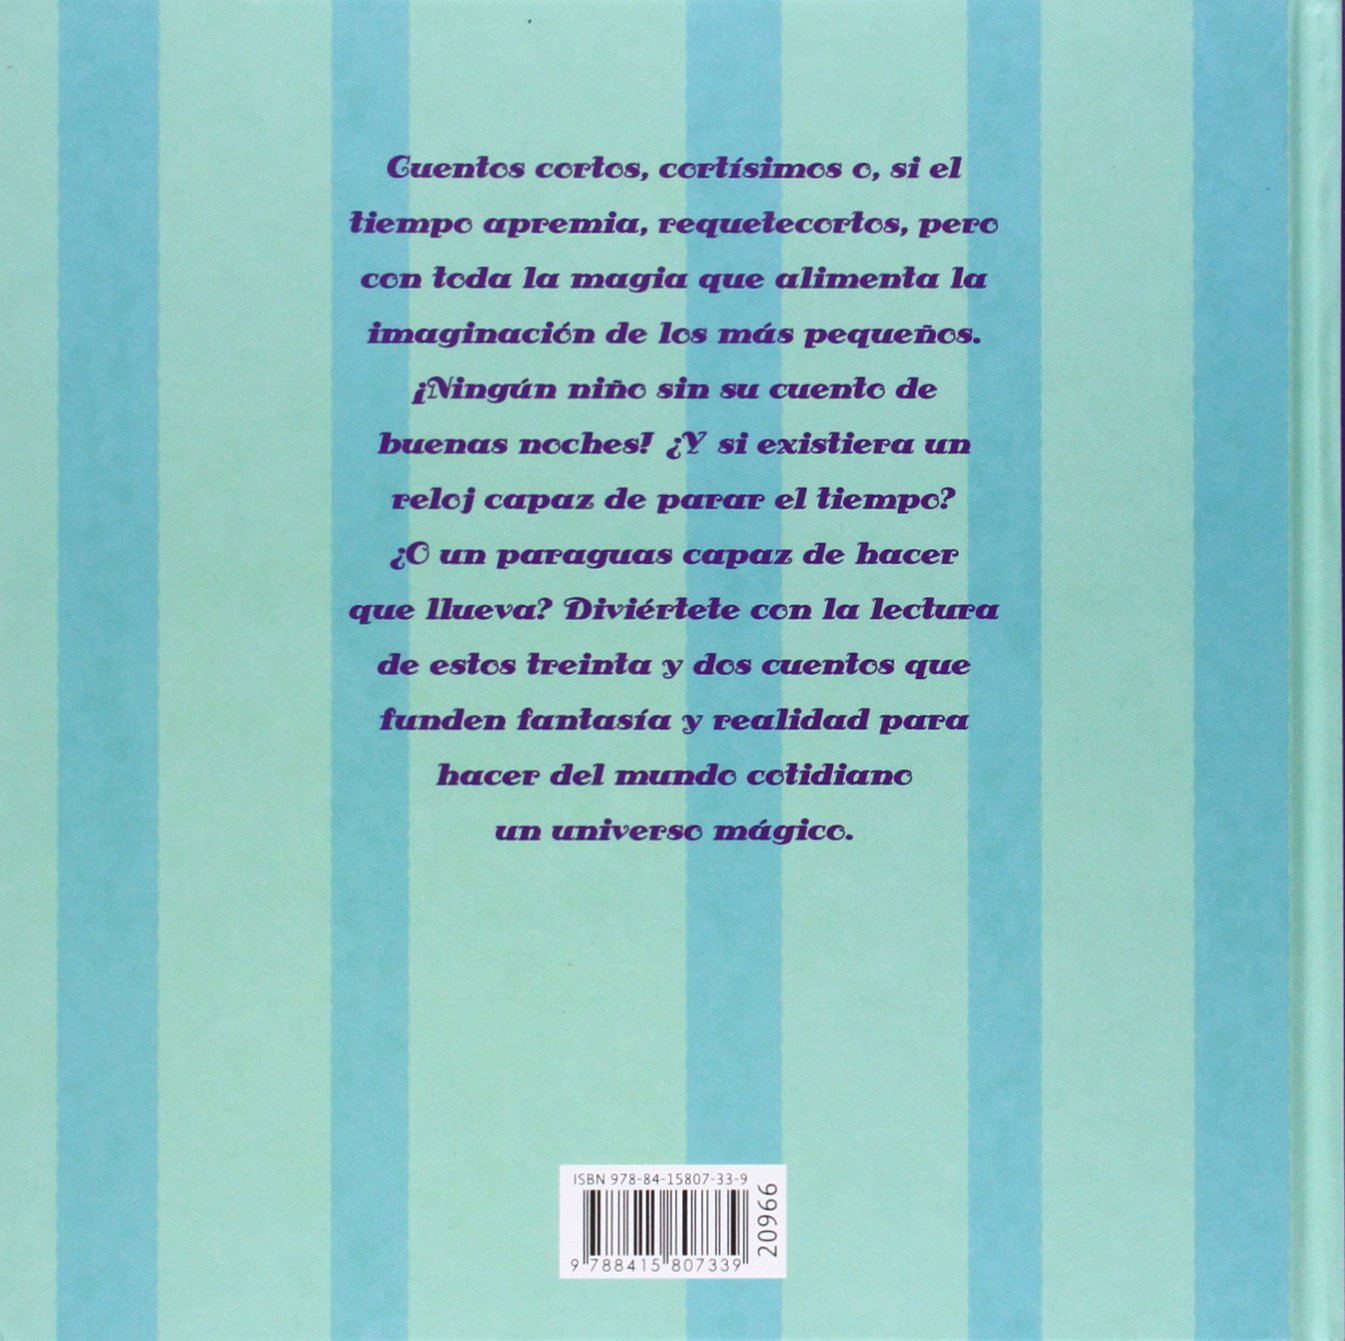 Cuentos cortos, cortitos y requetecortos: NURIA UBIERGO: 9788415807339: Amazon.com: Books